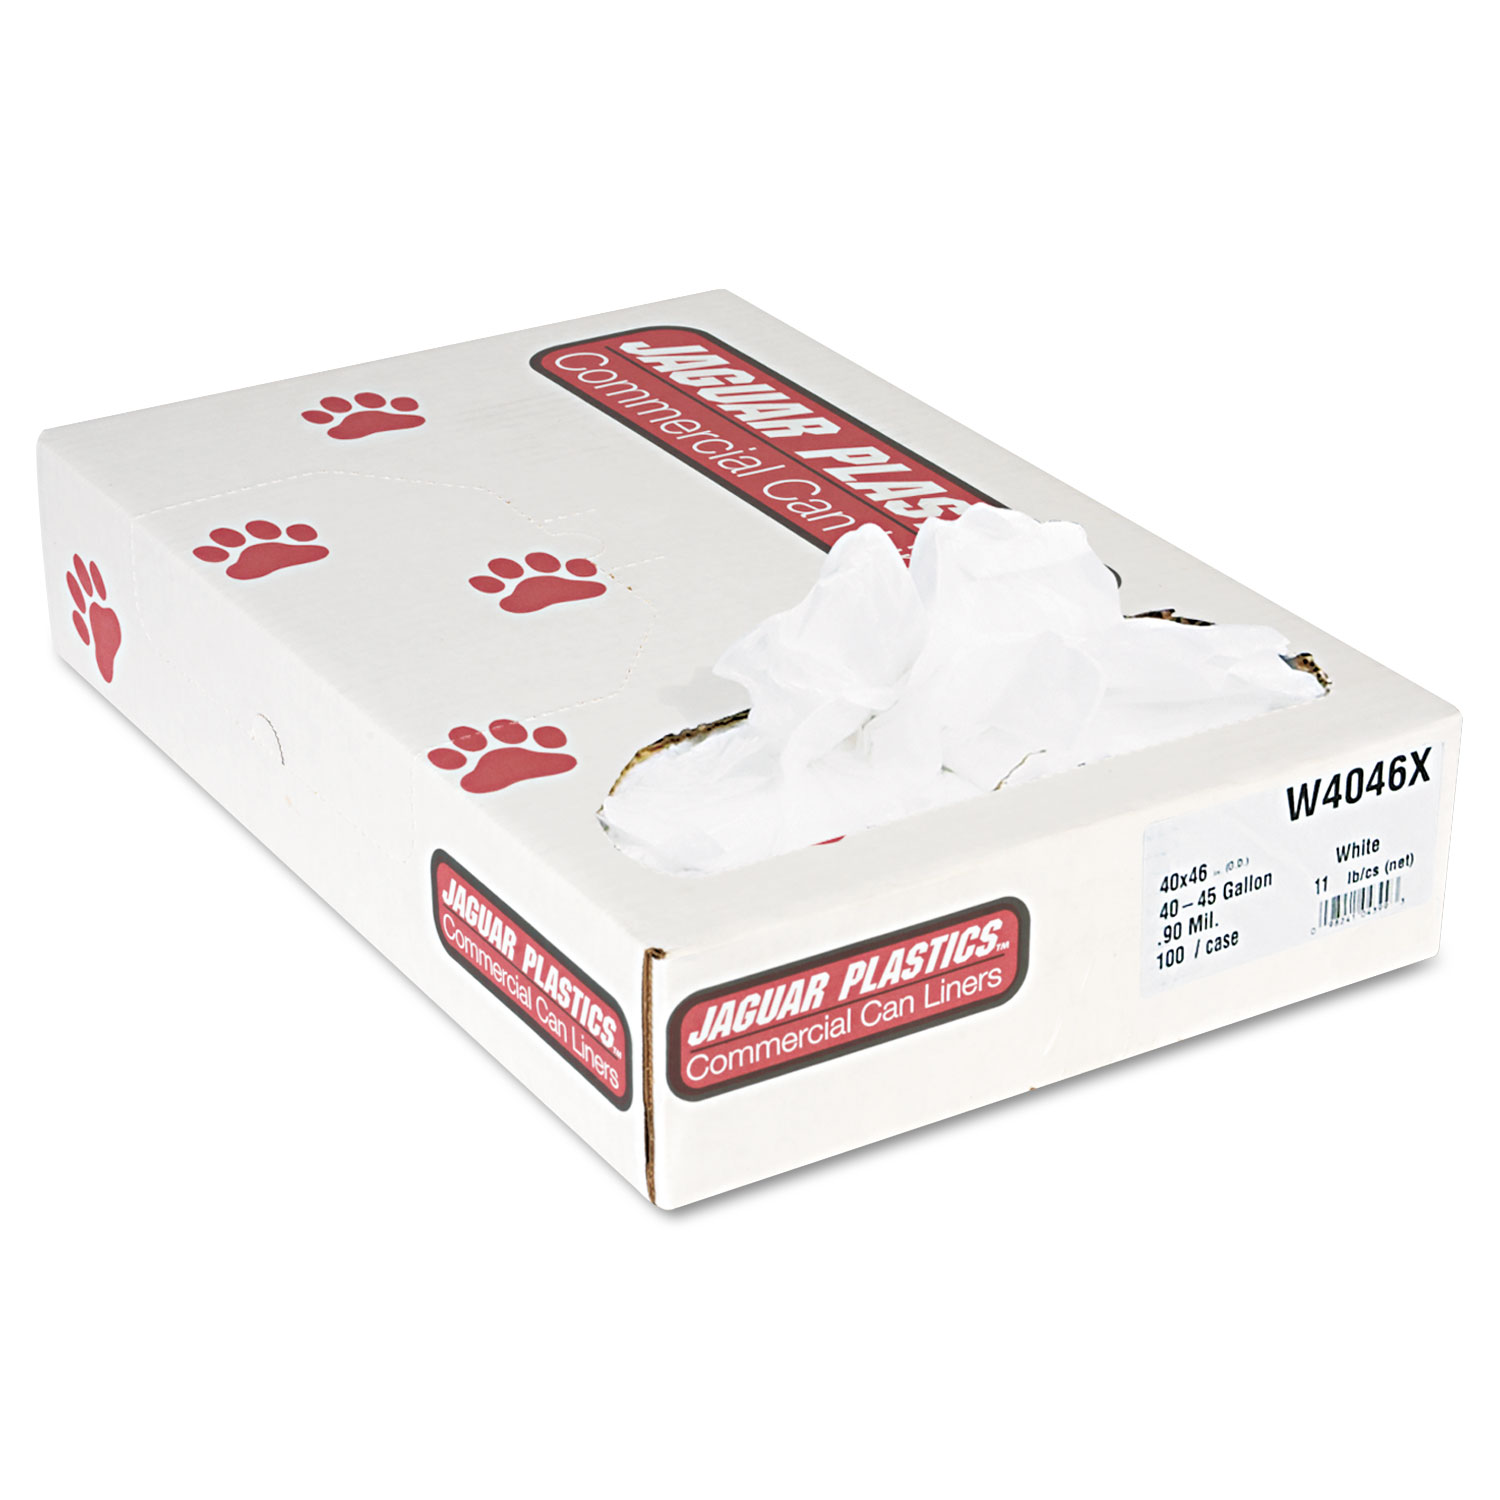 Jaguar Plastics Industrial Strength White Commercial Can Liners, 45 gal, 100 ct